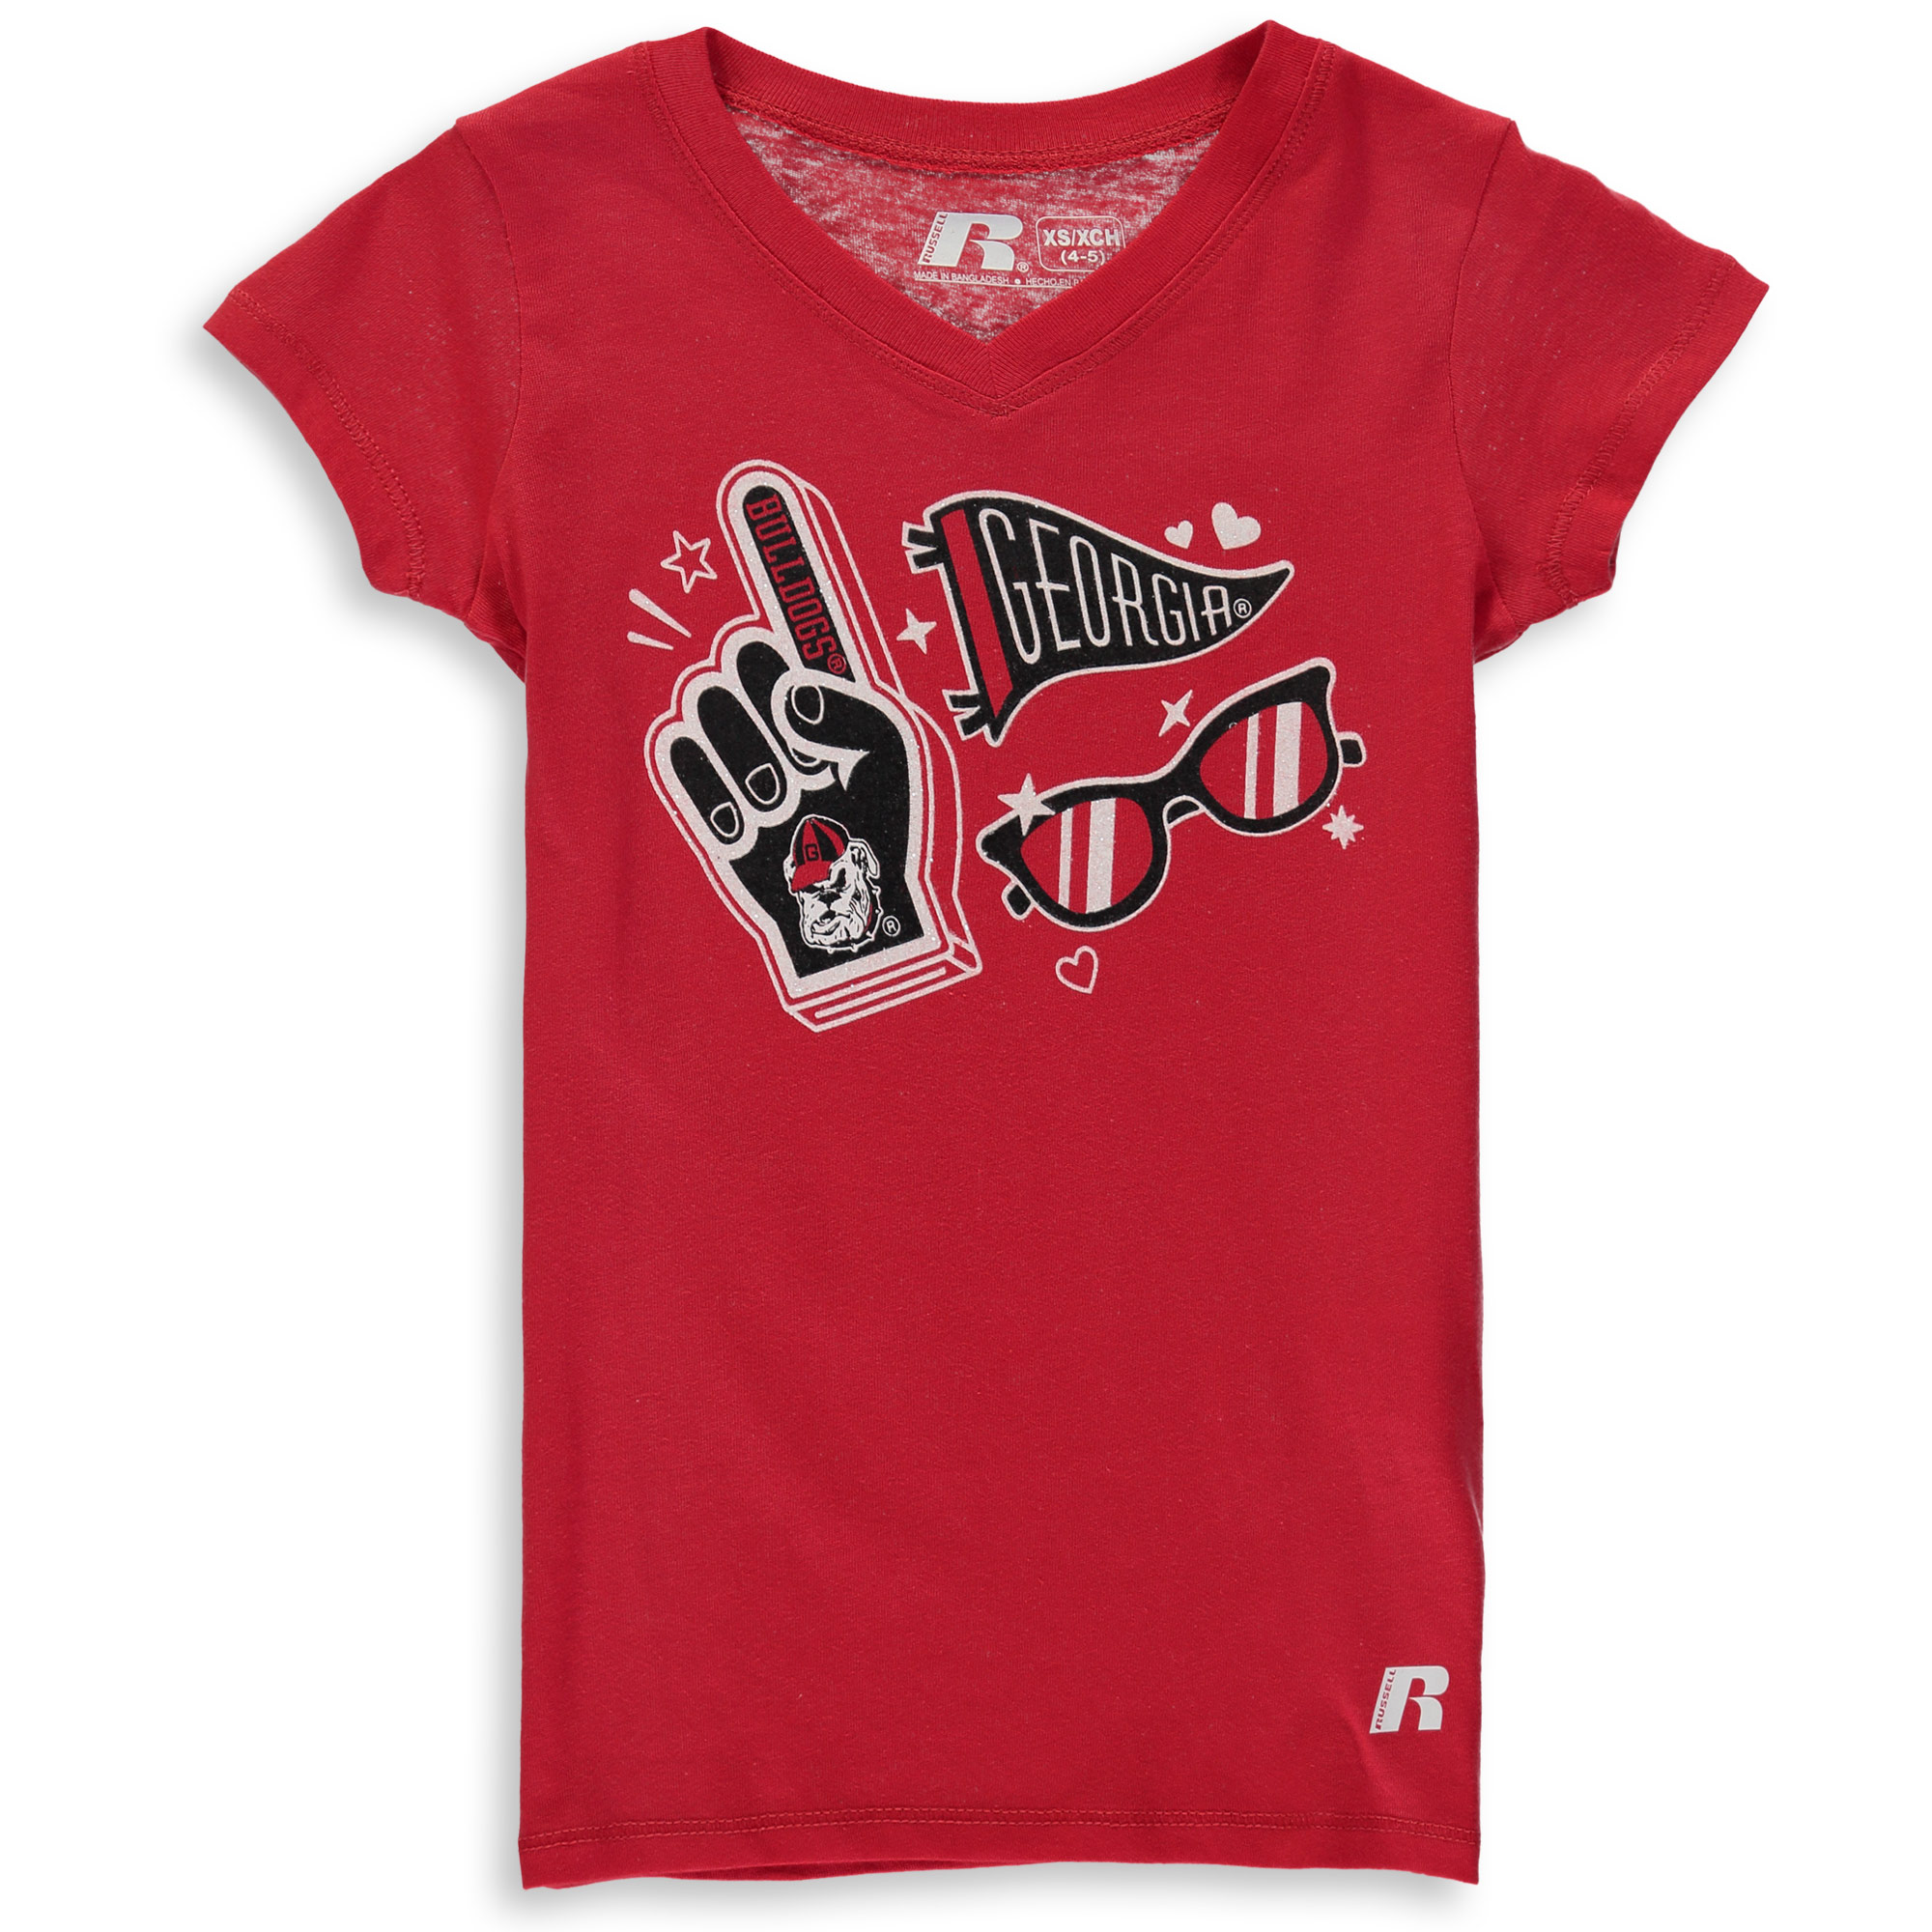 Girls Youth Russell Red Georgia Bulldogs Tunic V-Neck T-Shirt